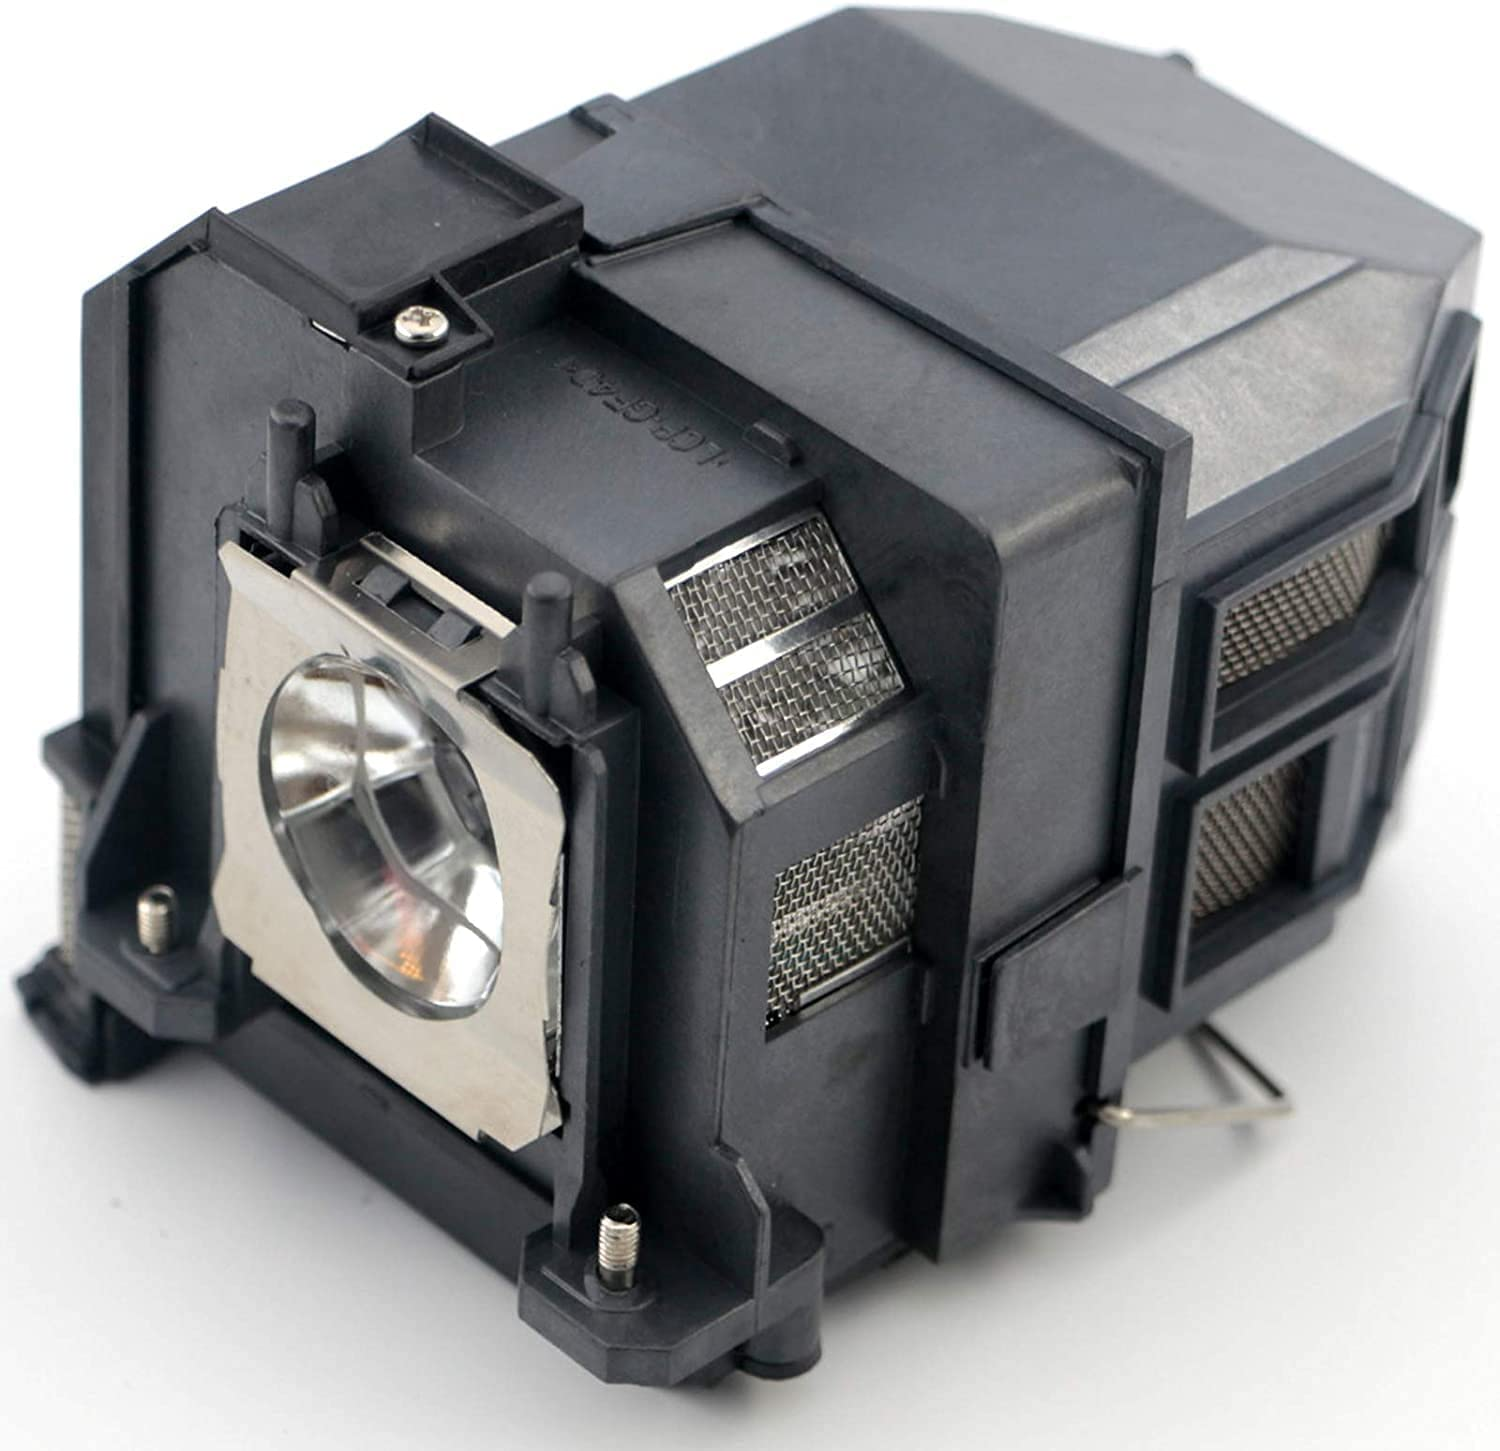 LAKELI V13H010L79 / V13H010L80 Projector Lamp Bulb for Epson ELPLP79 ELPLP80 BrightLink pro 585Wi 595Wi 1420wi 1430wi eb-575wi eb-585w powerlite 570 575w 580 585w Replacement Projector Lamp Bulb